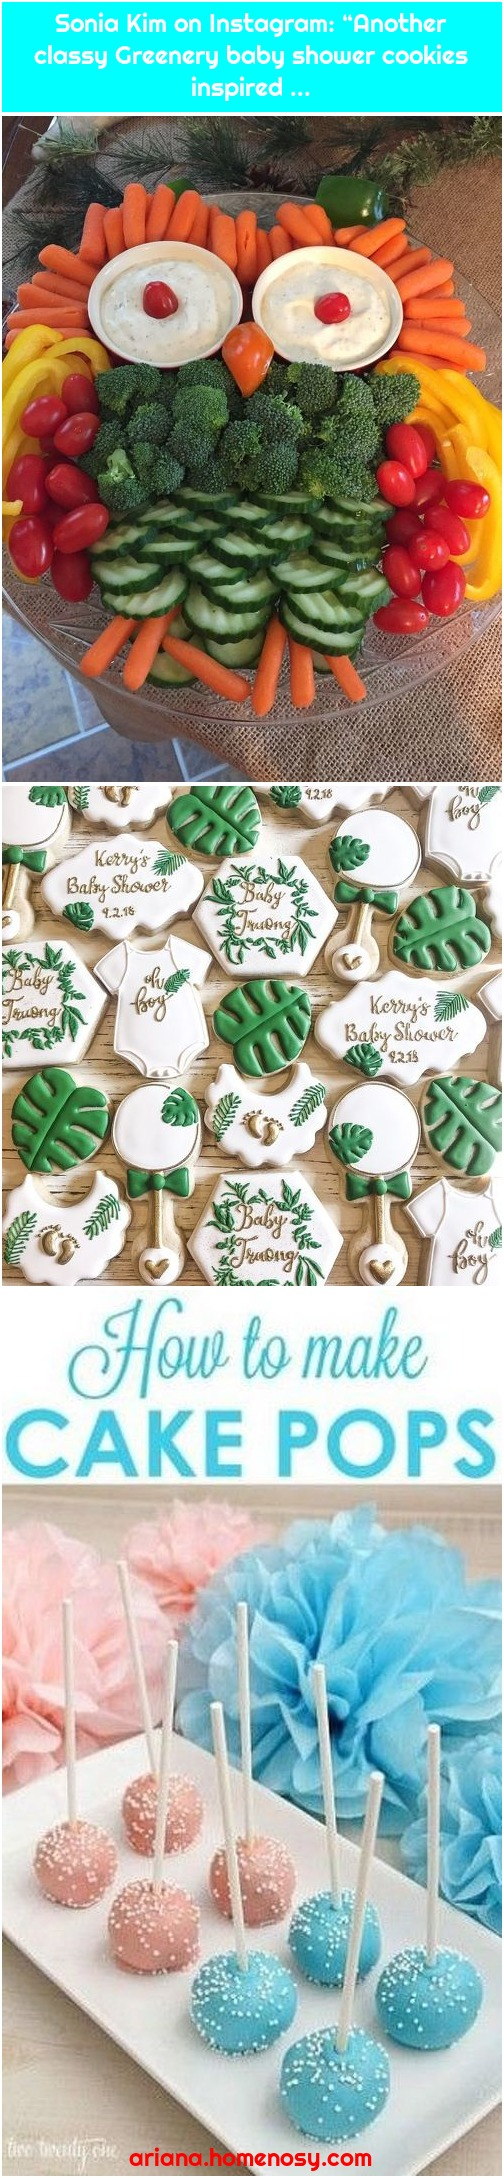 """Sonia Kim on Instagram: """"Another classy Greenery baby shower cookies inspired ..."""